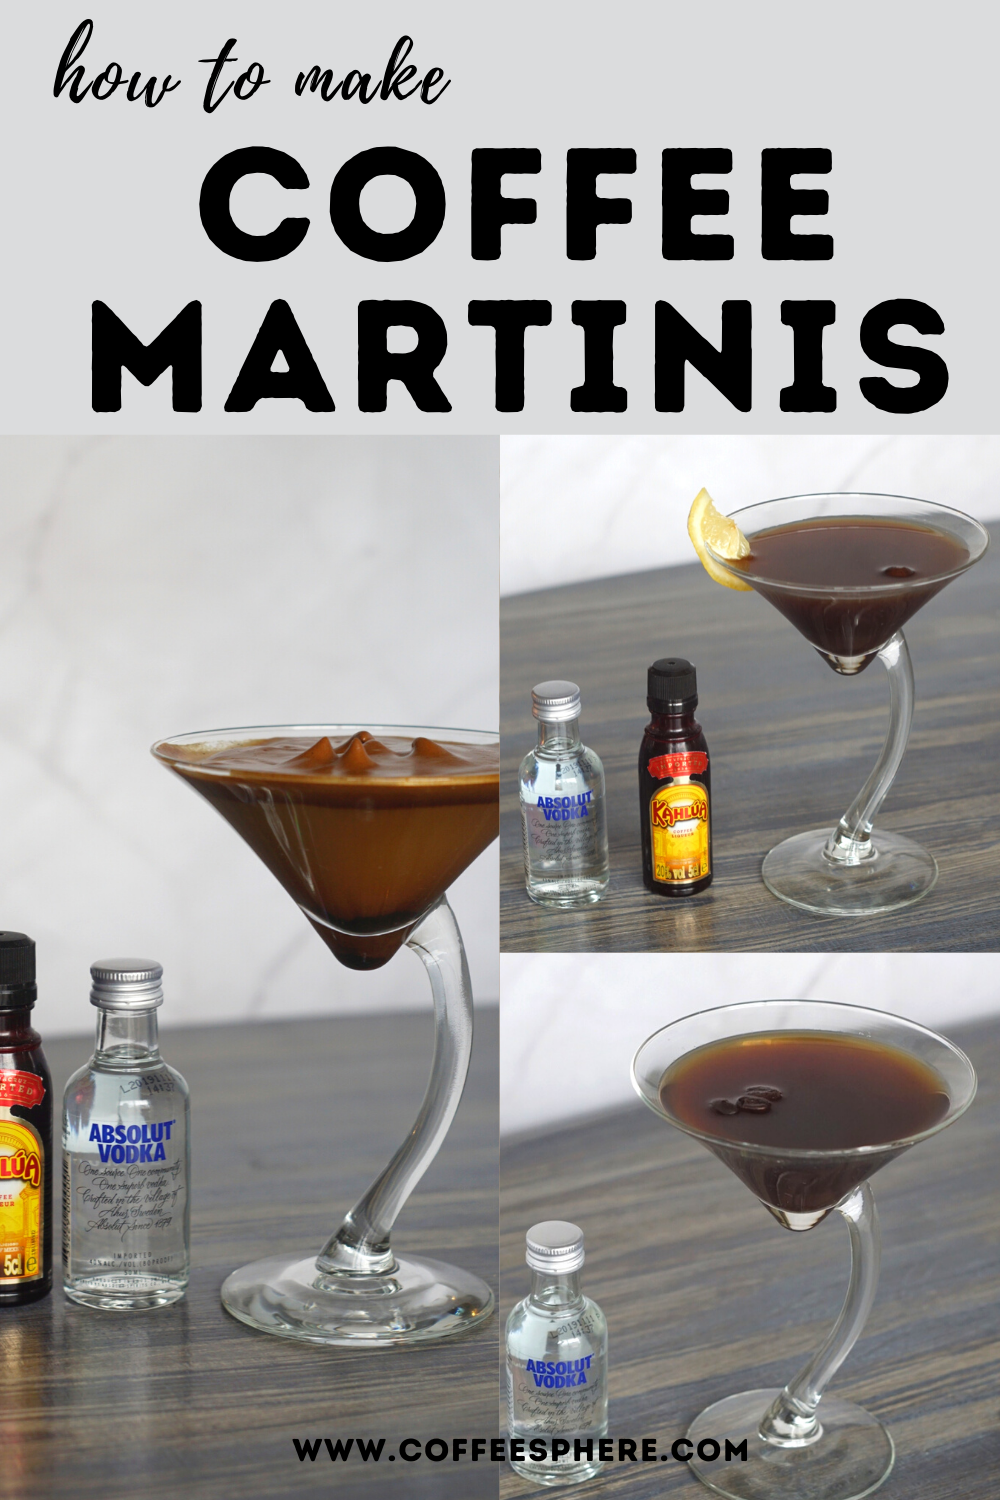 Vodka And Coffee How To Make Coffee Martinis 3 Easy Ways How To Make Coffee Martini Recipes Vodka Coffee Martini Recipe